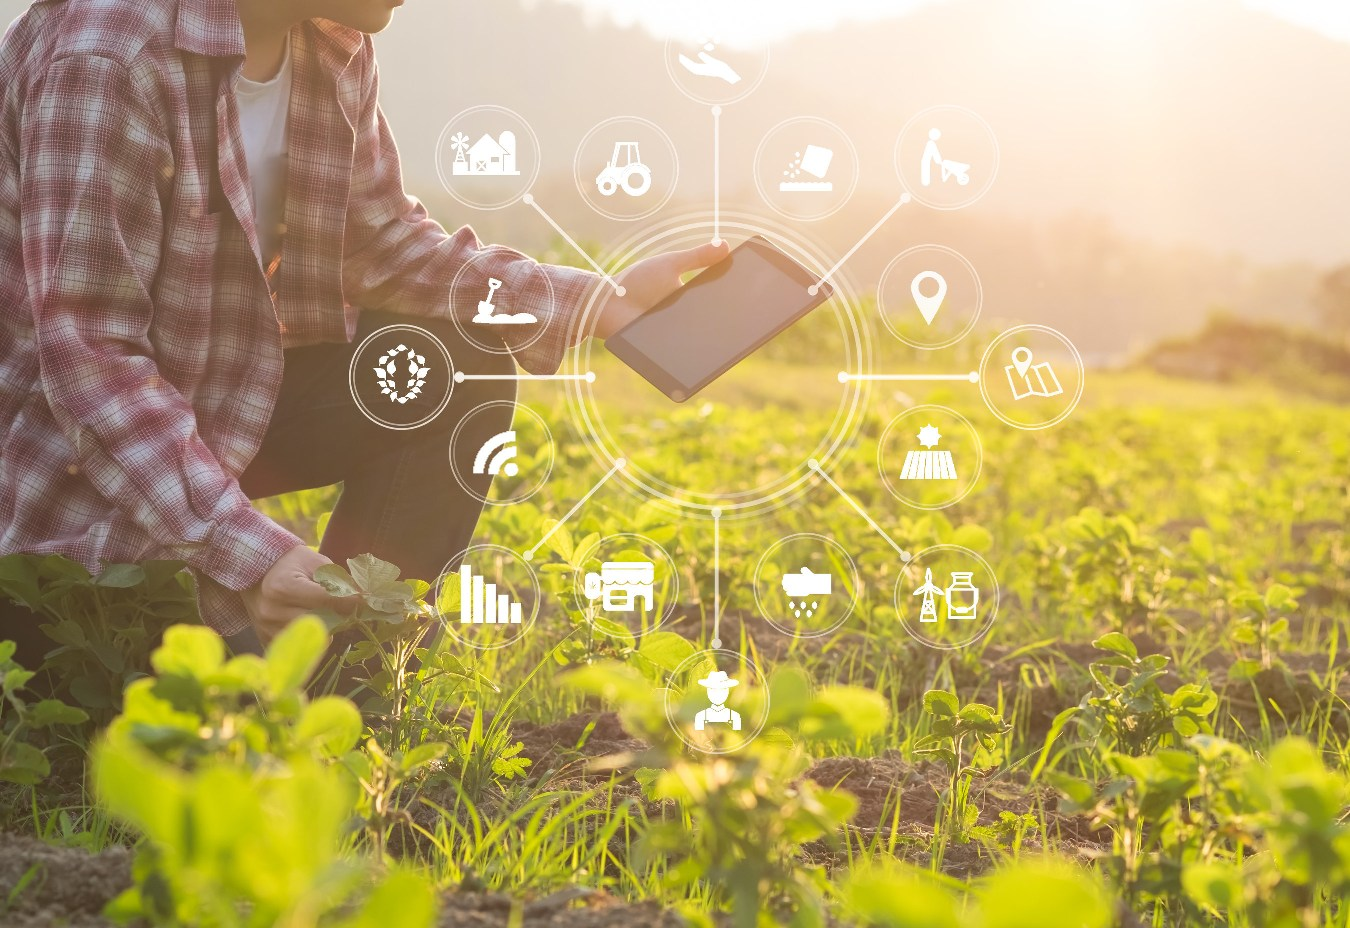 Image: Yara, IBM launch new platform for data exchange in the agriculture sector. (Credit: IBM/PR Newswire)